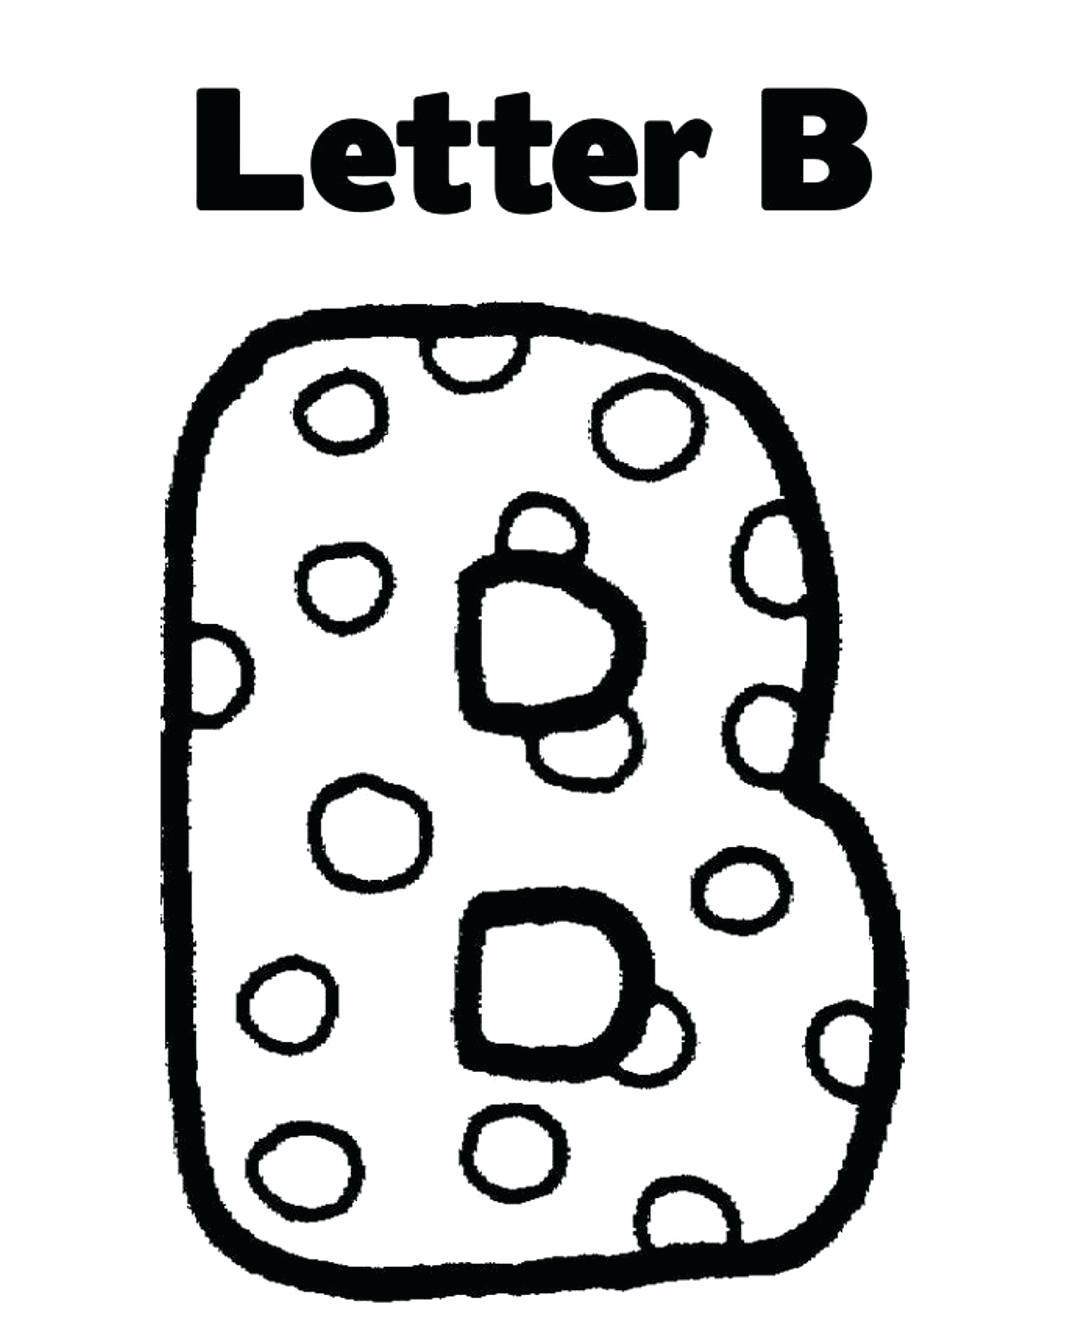 1069x1317 Unique Letter B Coloring Pages Collection Printable Coloring Sheet